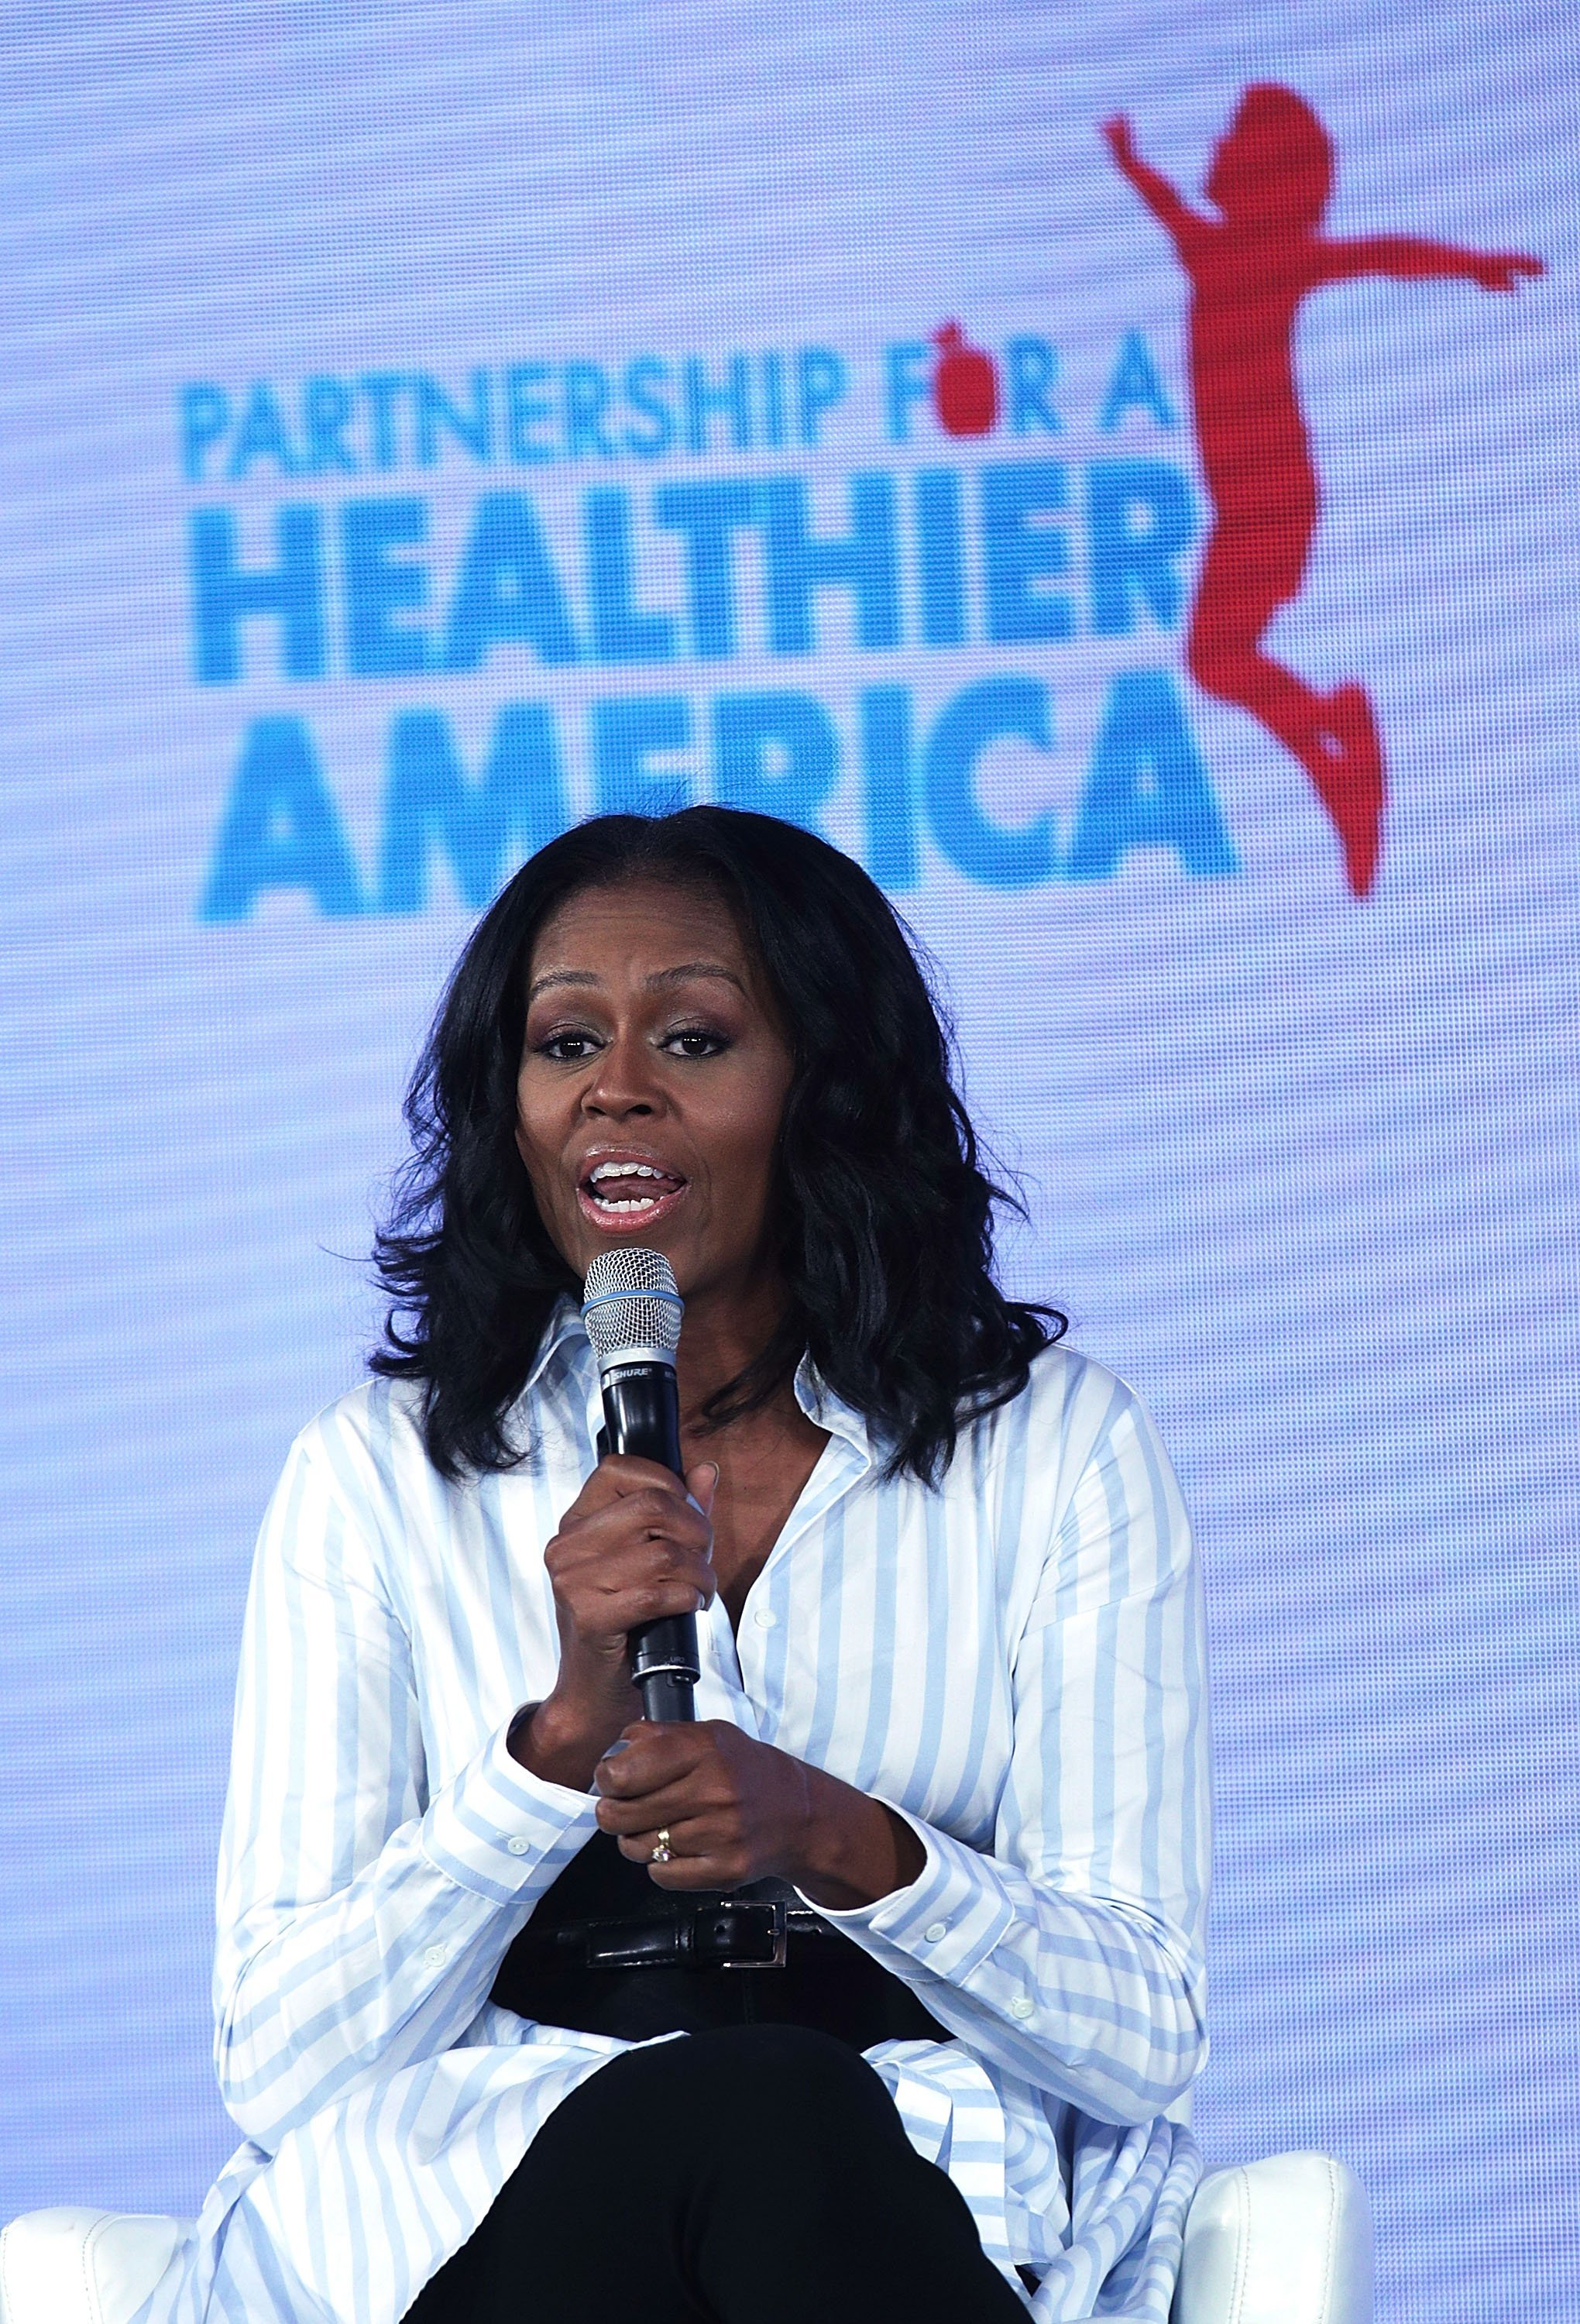 Michelle Obama speaks during the Partnership for a Healthier America Summit May 12, 2017, in Washington, DC. | Source: Getty Images.